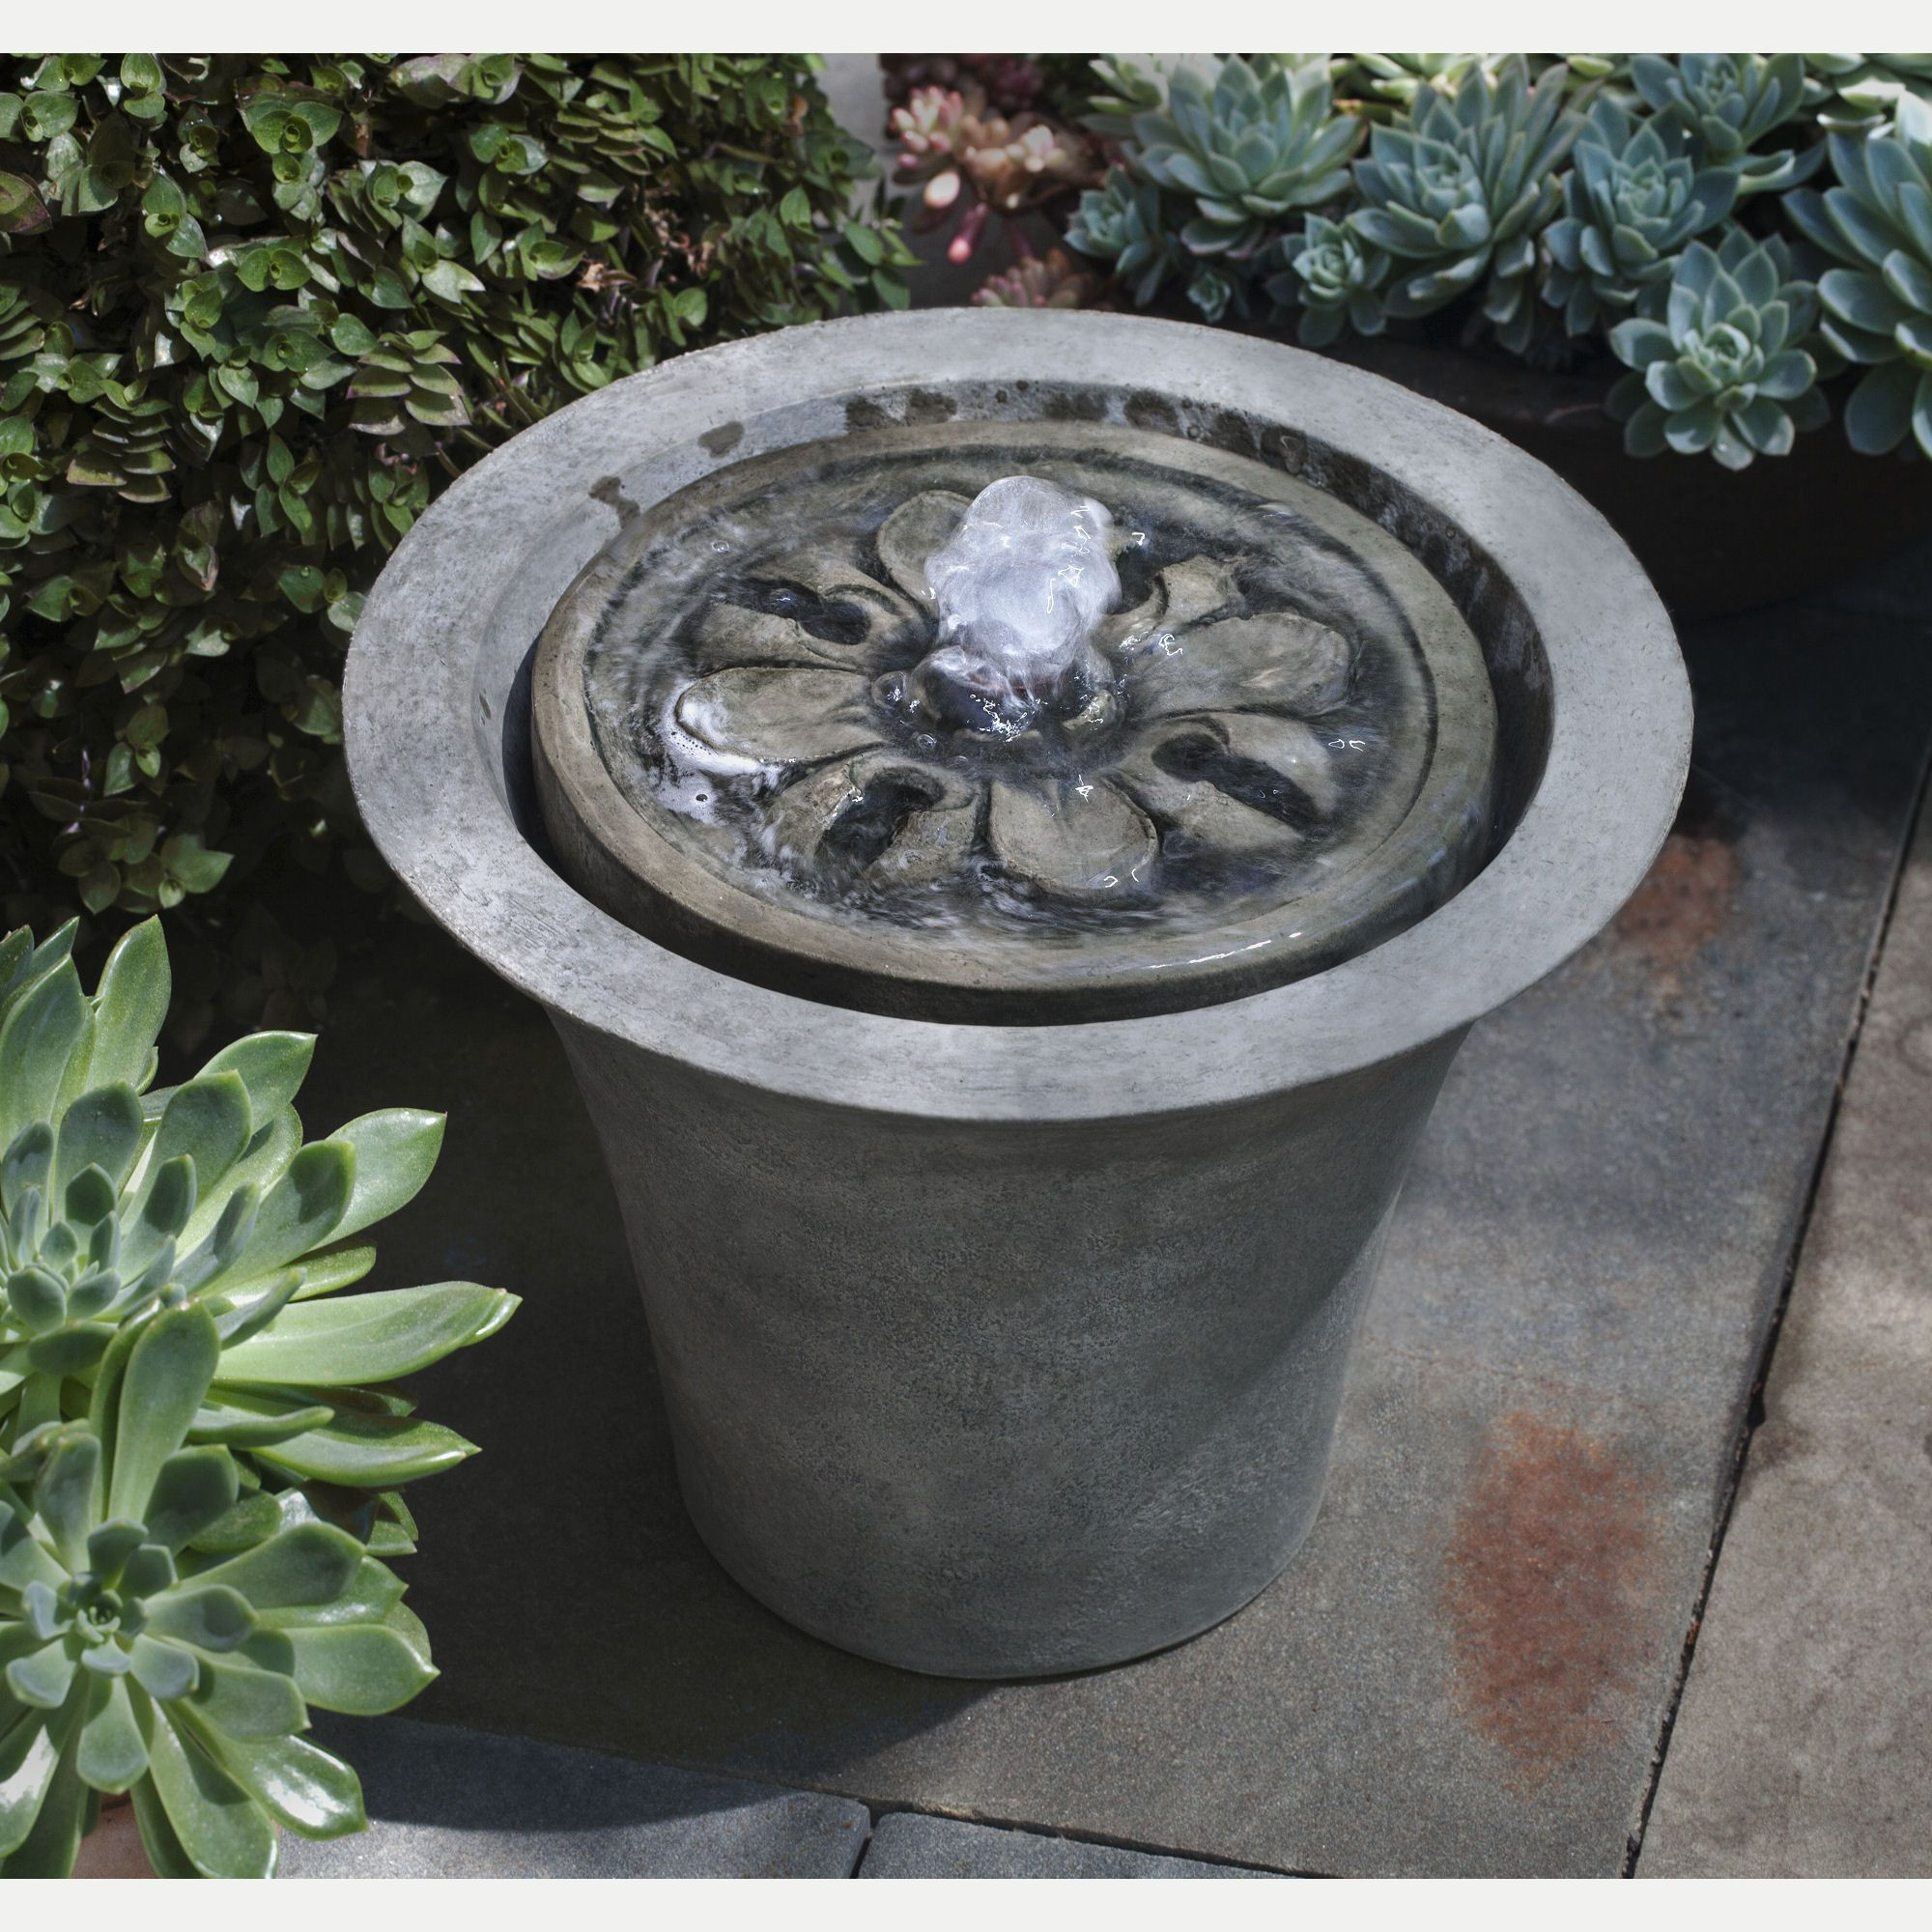 vase water fountain outdoor of awesome logo water fountains home fountains ideas in flora indoor outdoor tabletop water fountain small vase shape tall pertaining to logo water fountains